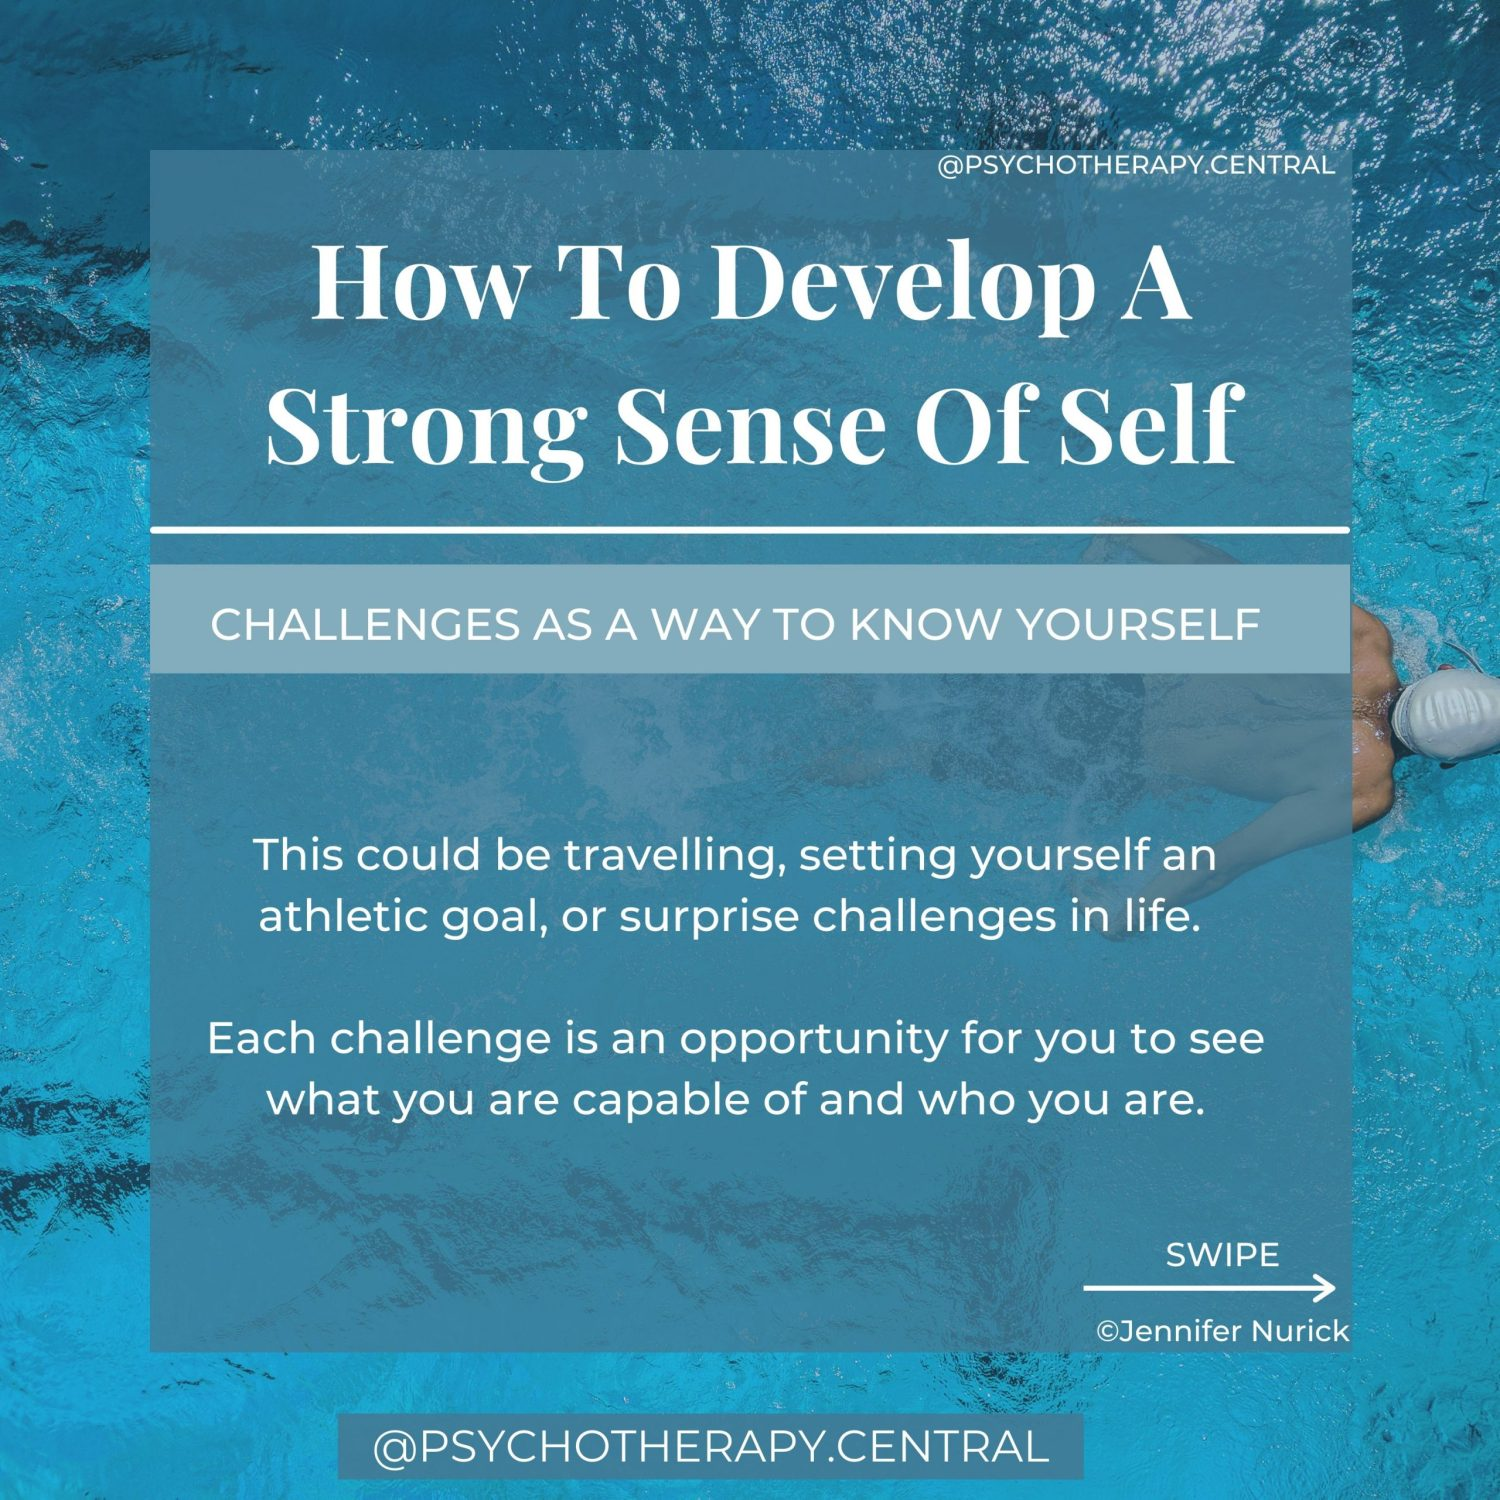 challenges as a way to know self